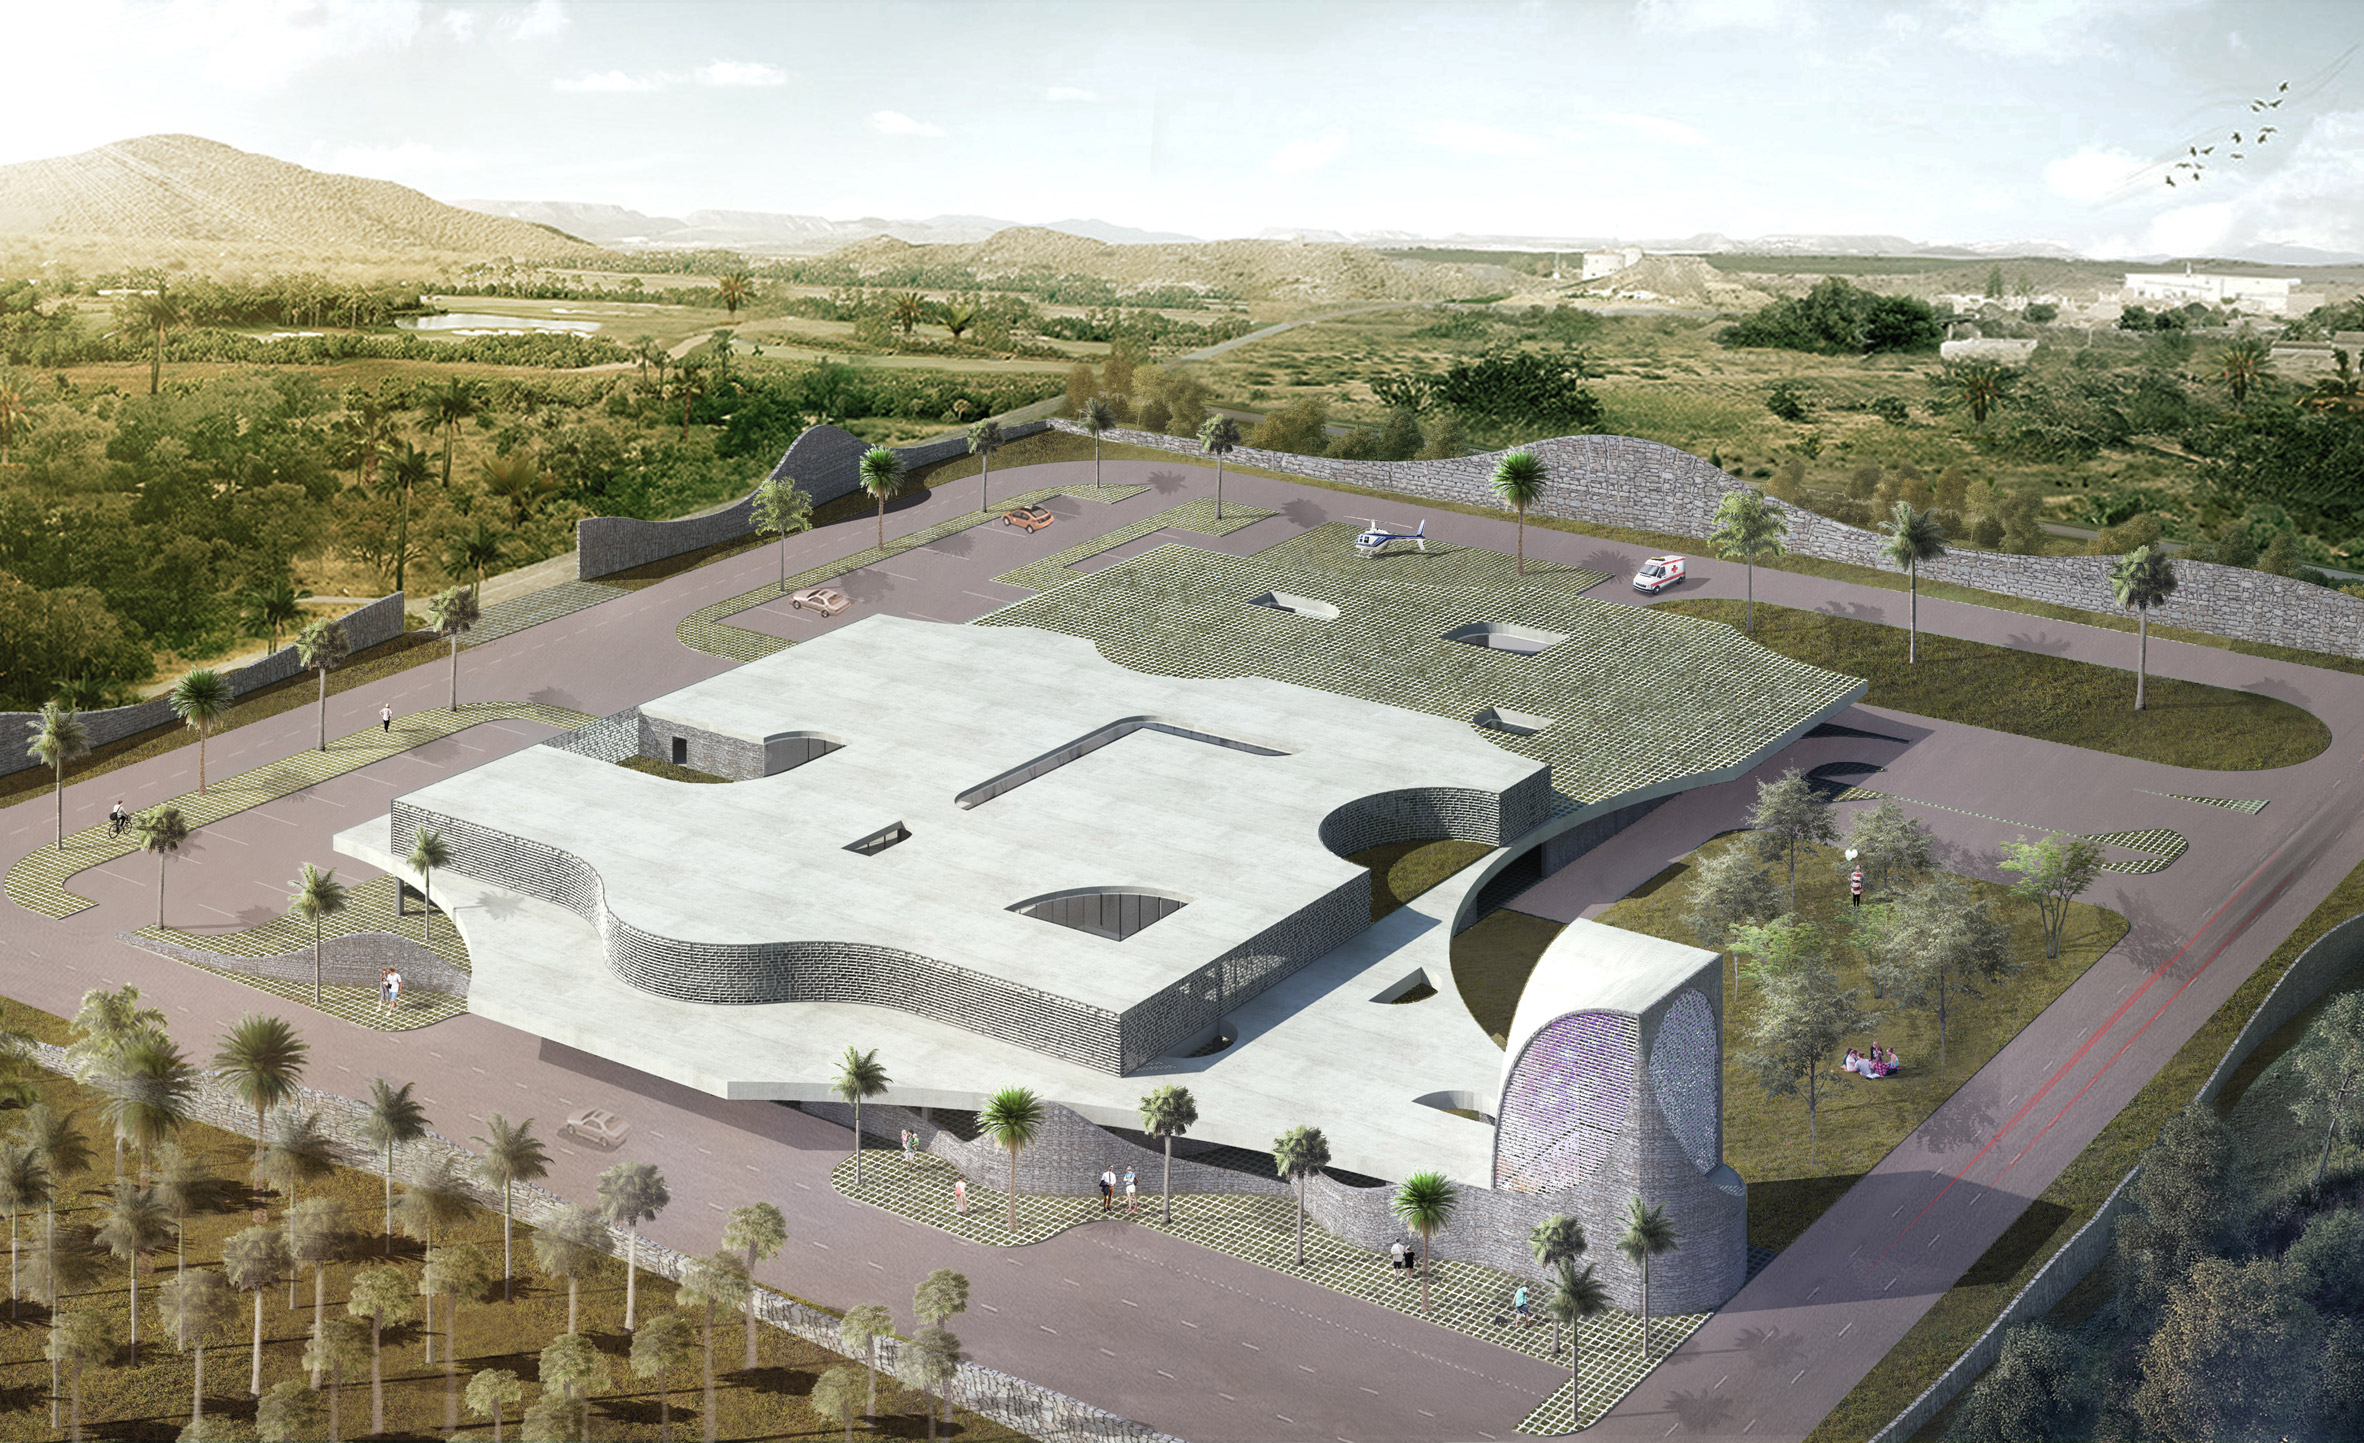 Philippines hospital designed by CAZA to serve as model for rural healthcare